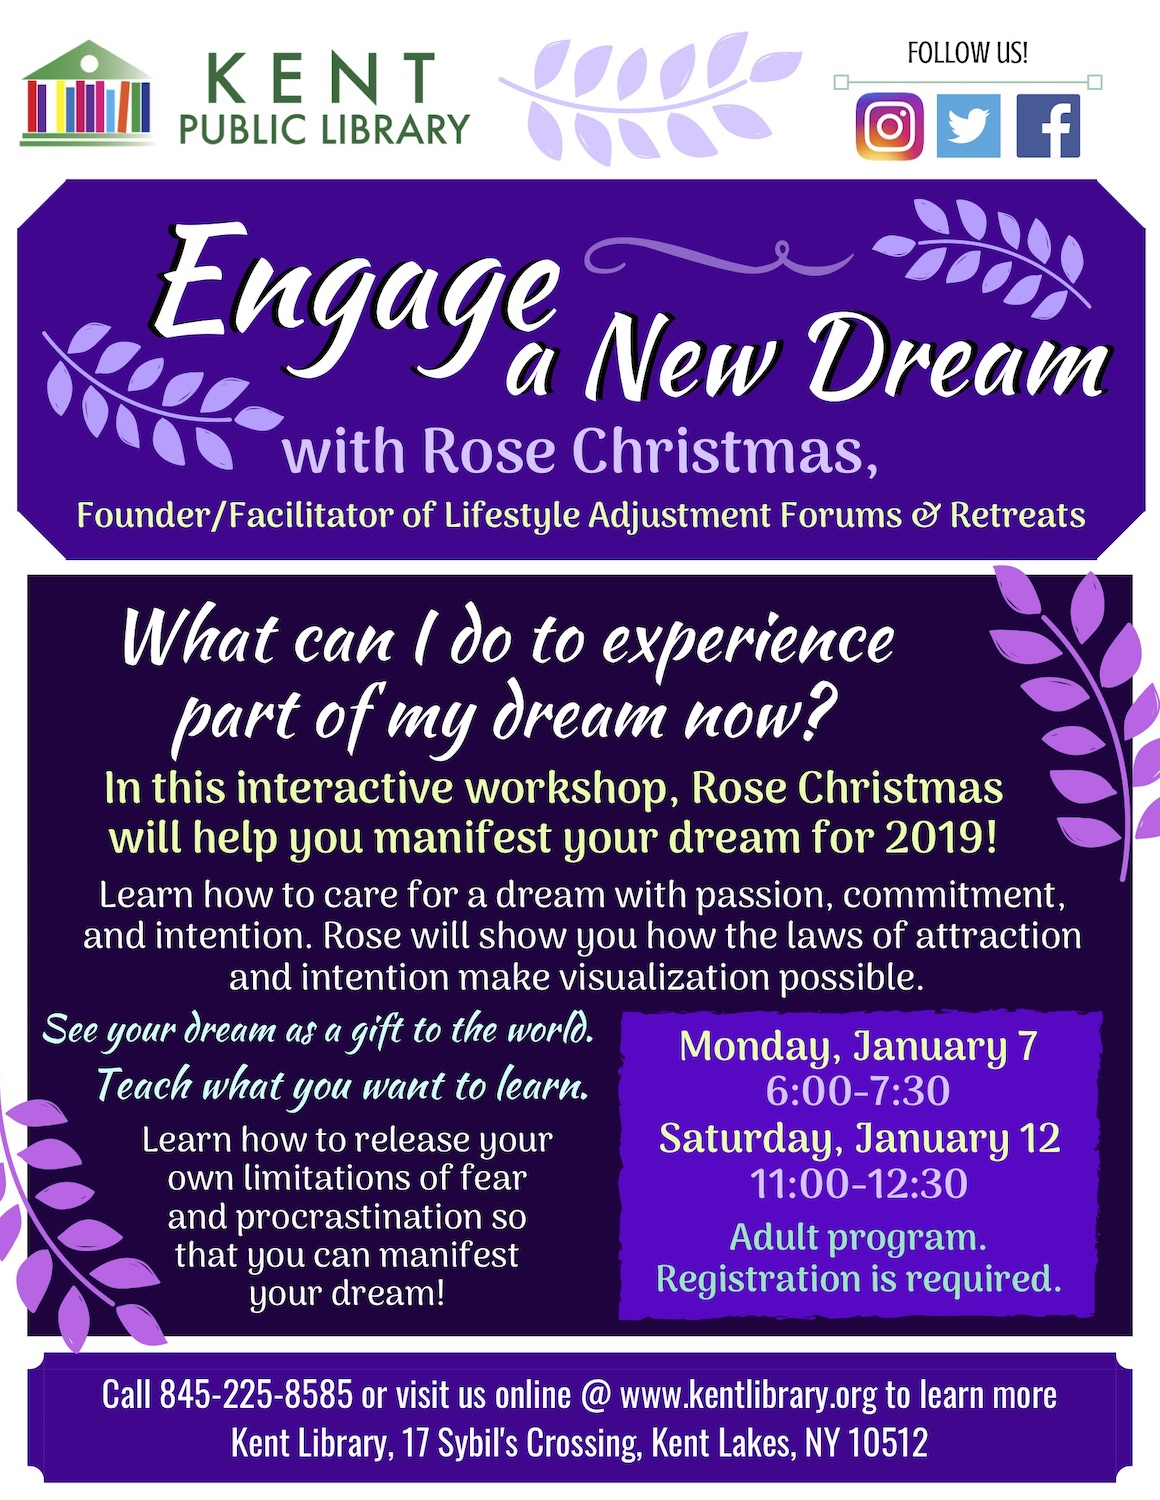 My Christmas Dream 2019.Engage A New Dream In 2019 With Rose Christmas At The Kent